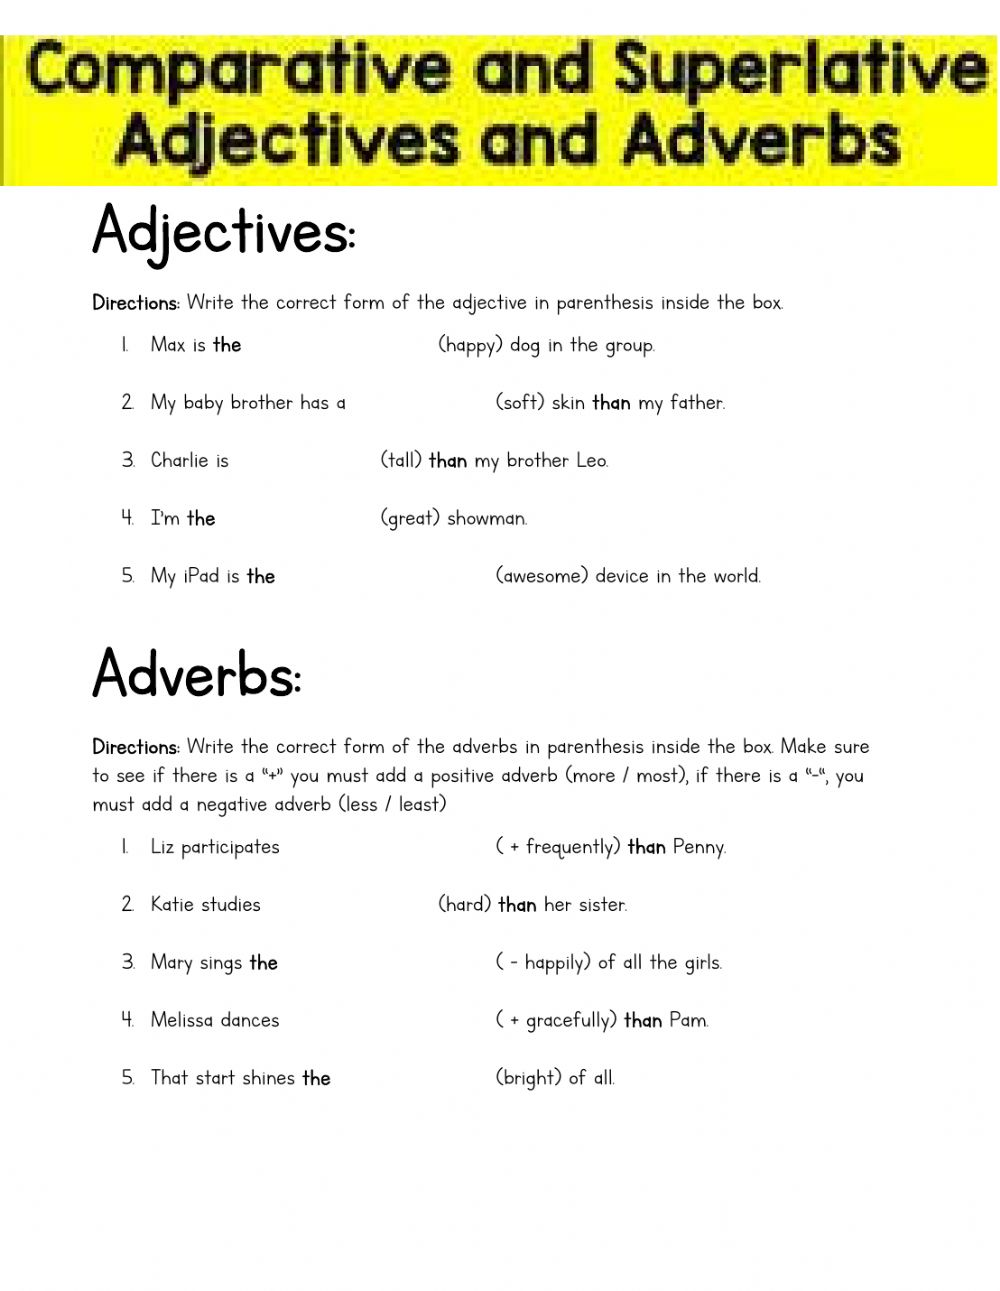 medium resolution of Comparative and Superlative Adjectives and Adverbs (4th grade) worksheet